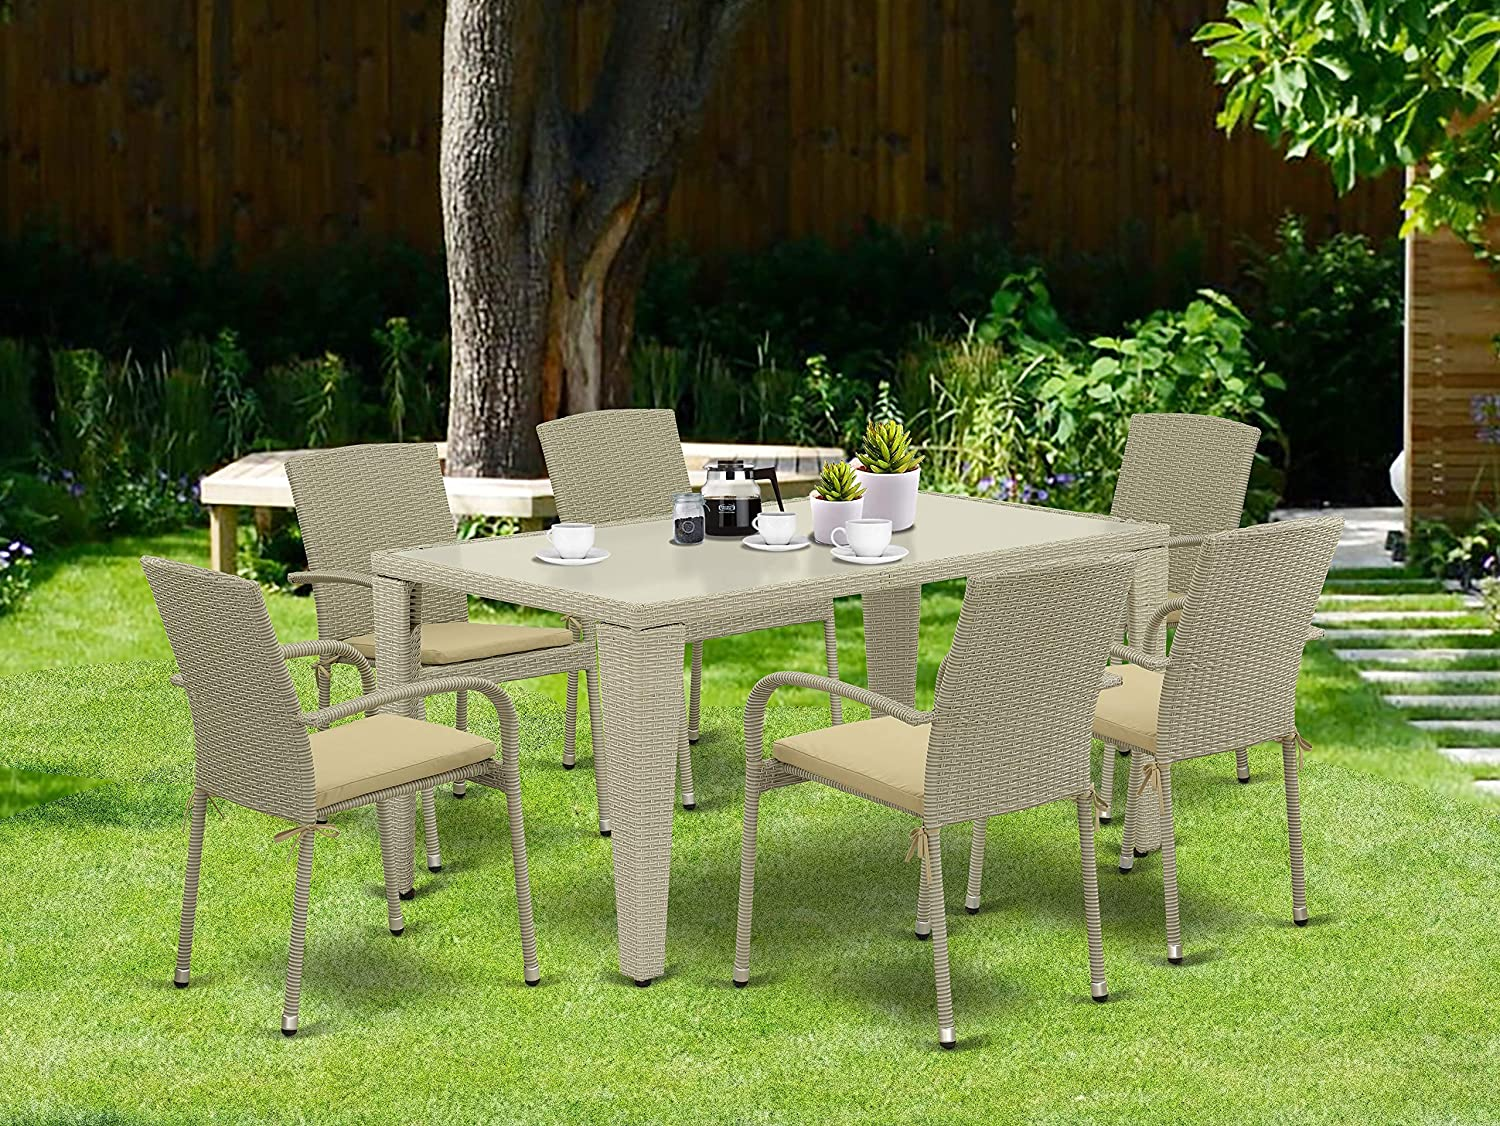 East West Furniture GUJU703A 7Pc Outdoor Natural Color Wicker Dining Set Includes a Patio Table and 6 Balcony Backyard Armchair with Linen Fabric Cushion